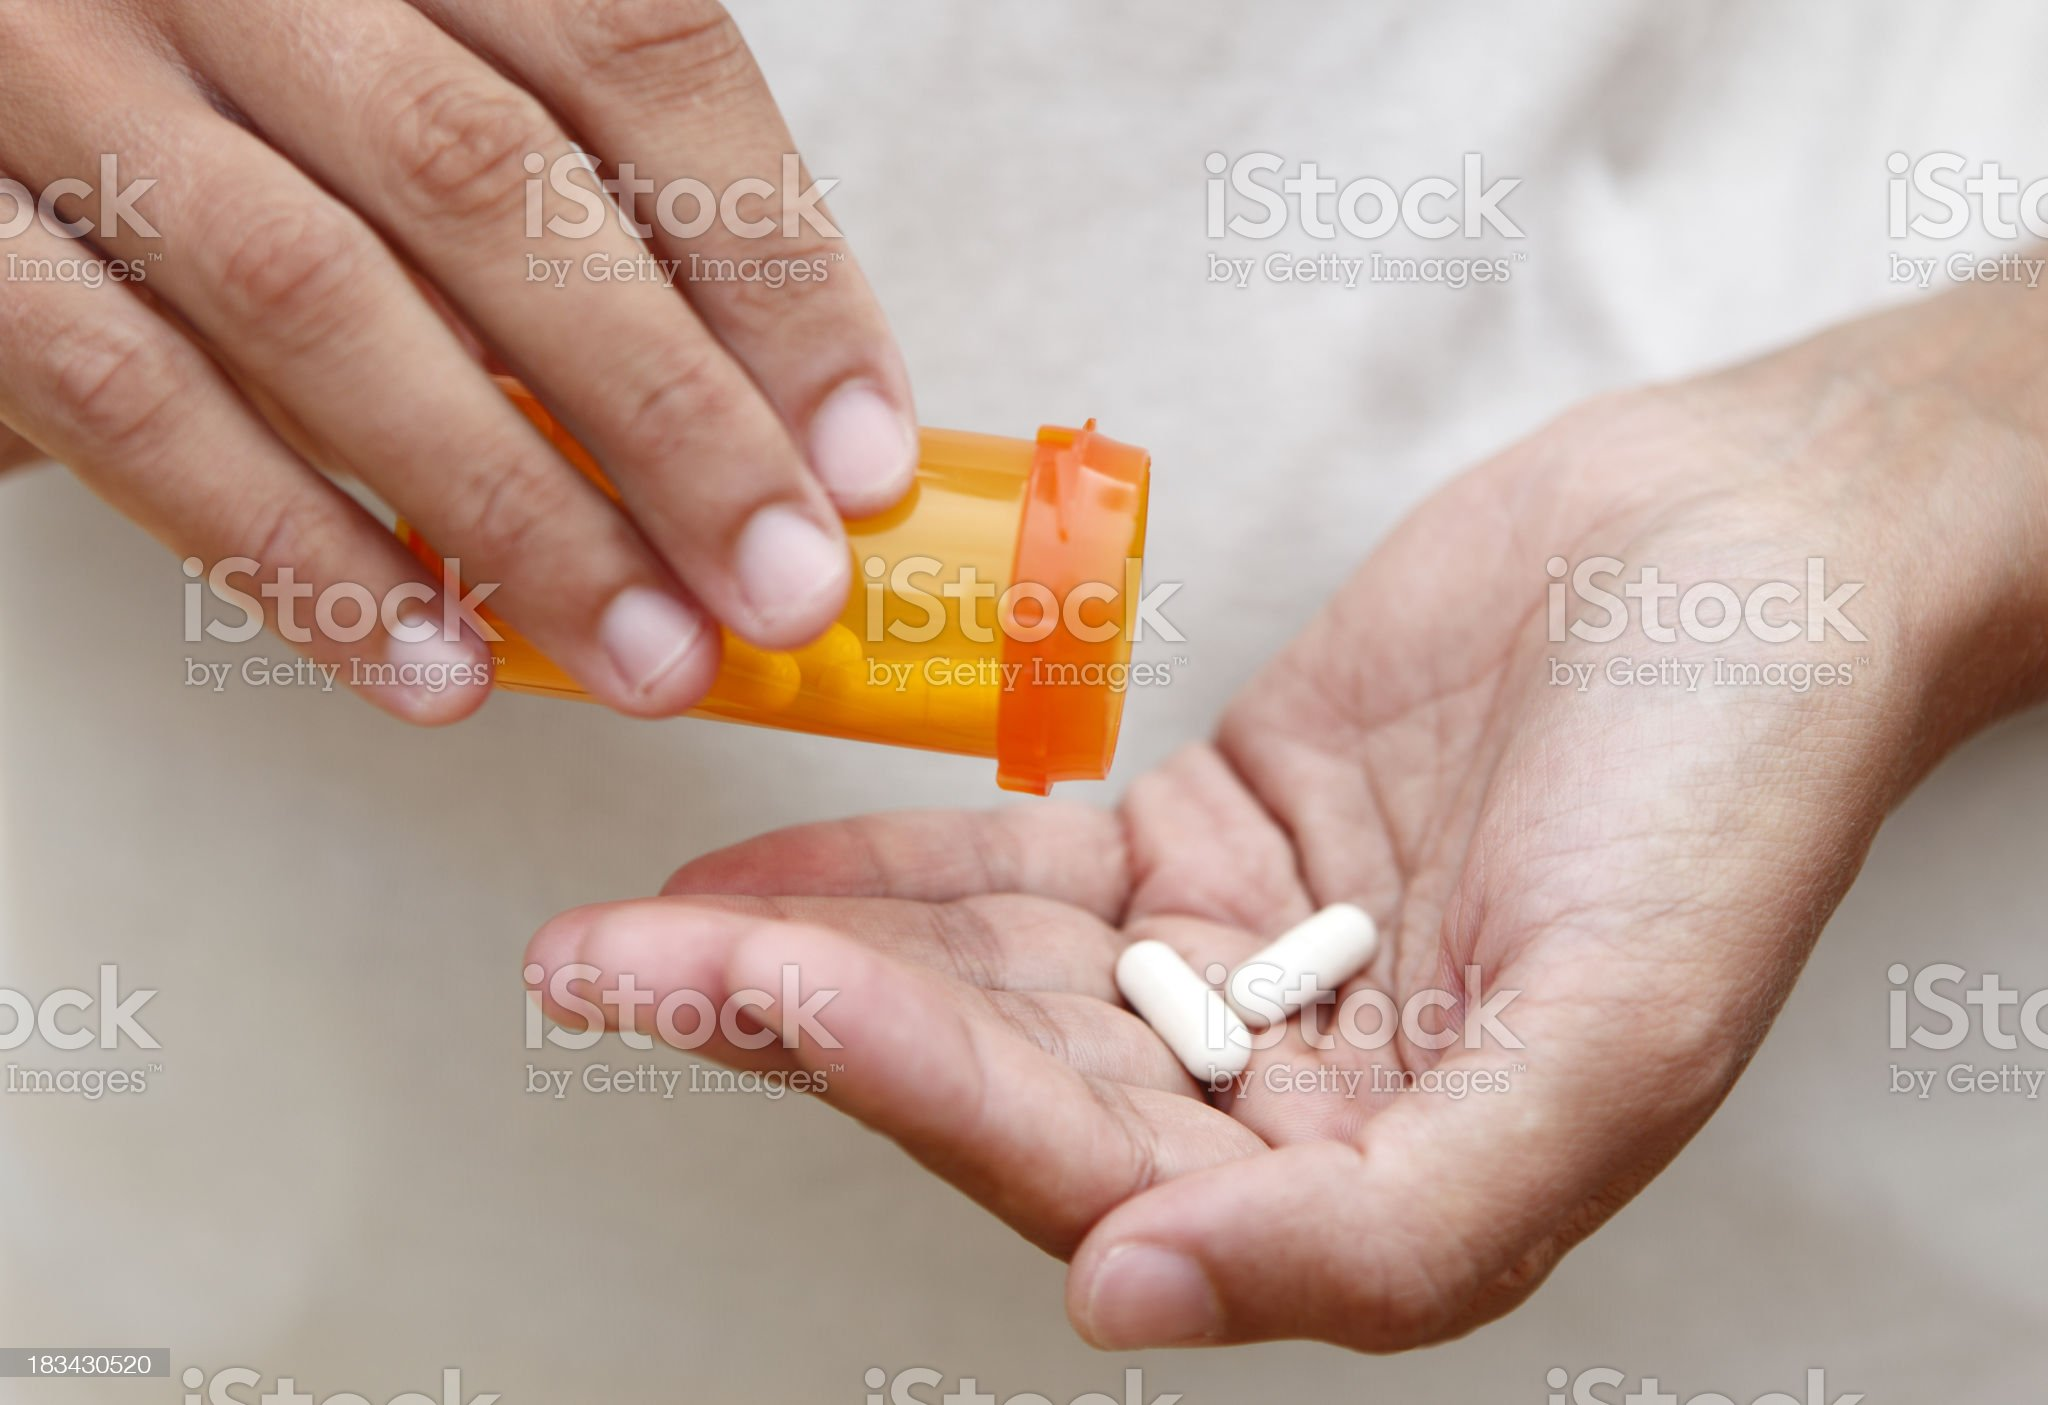 Medicines in hand royalty-free stock photo